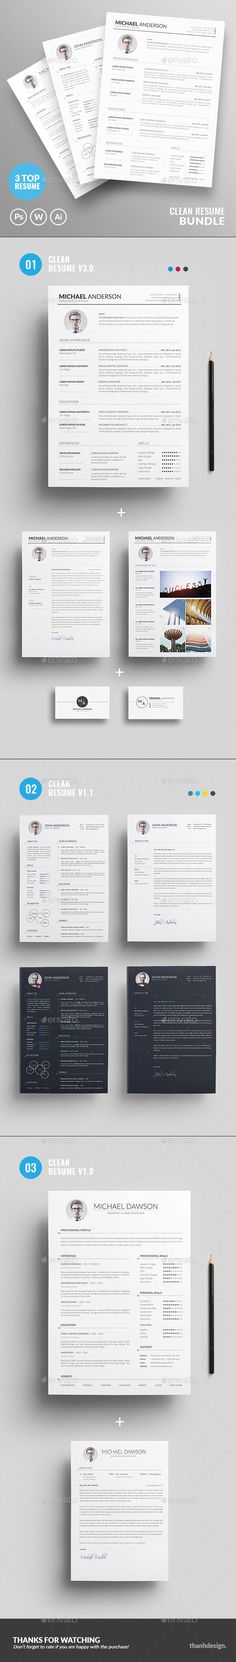 4-in-1 Executive Resume \ Cover Letter Templates for Designers - stylish resume templates